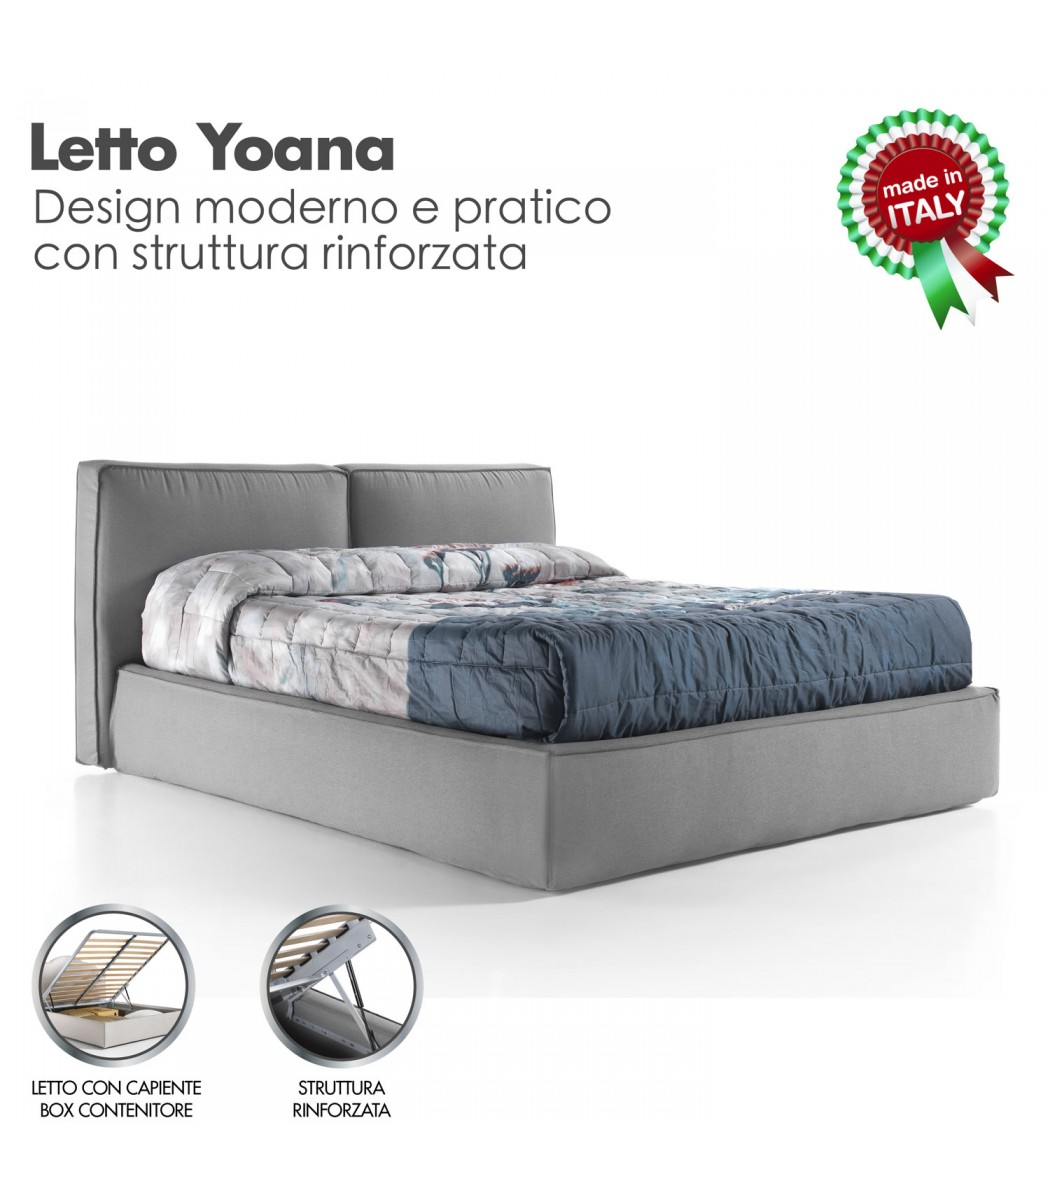 Best letti in offerta pictures amazing house design for Letto design offerta